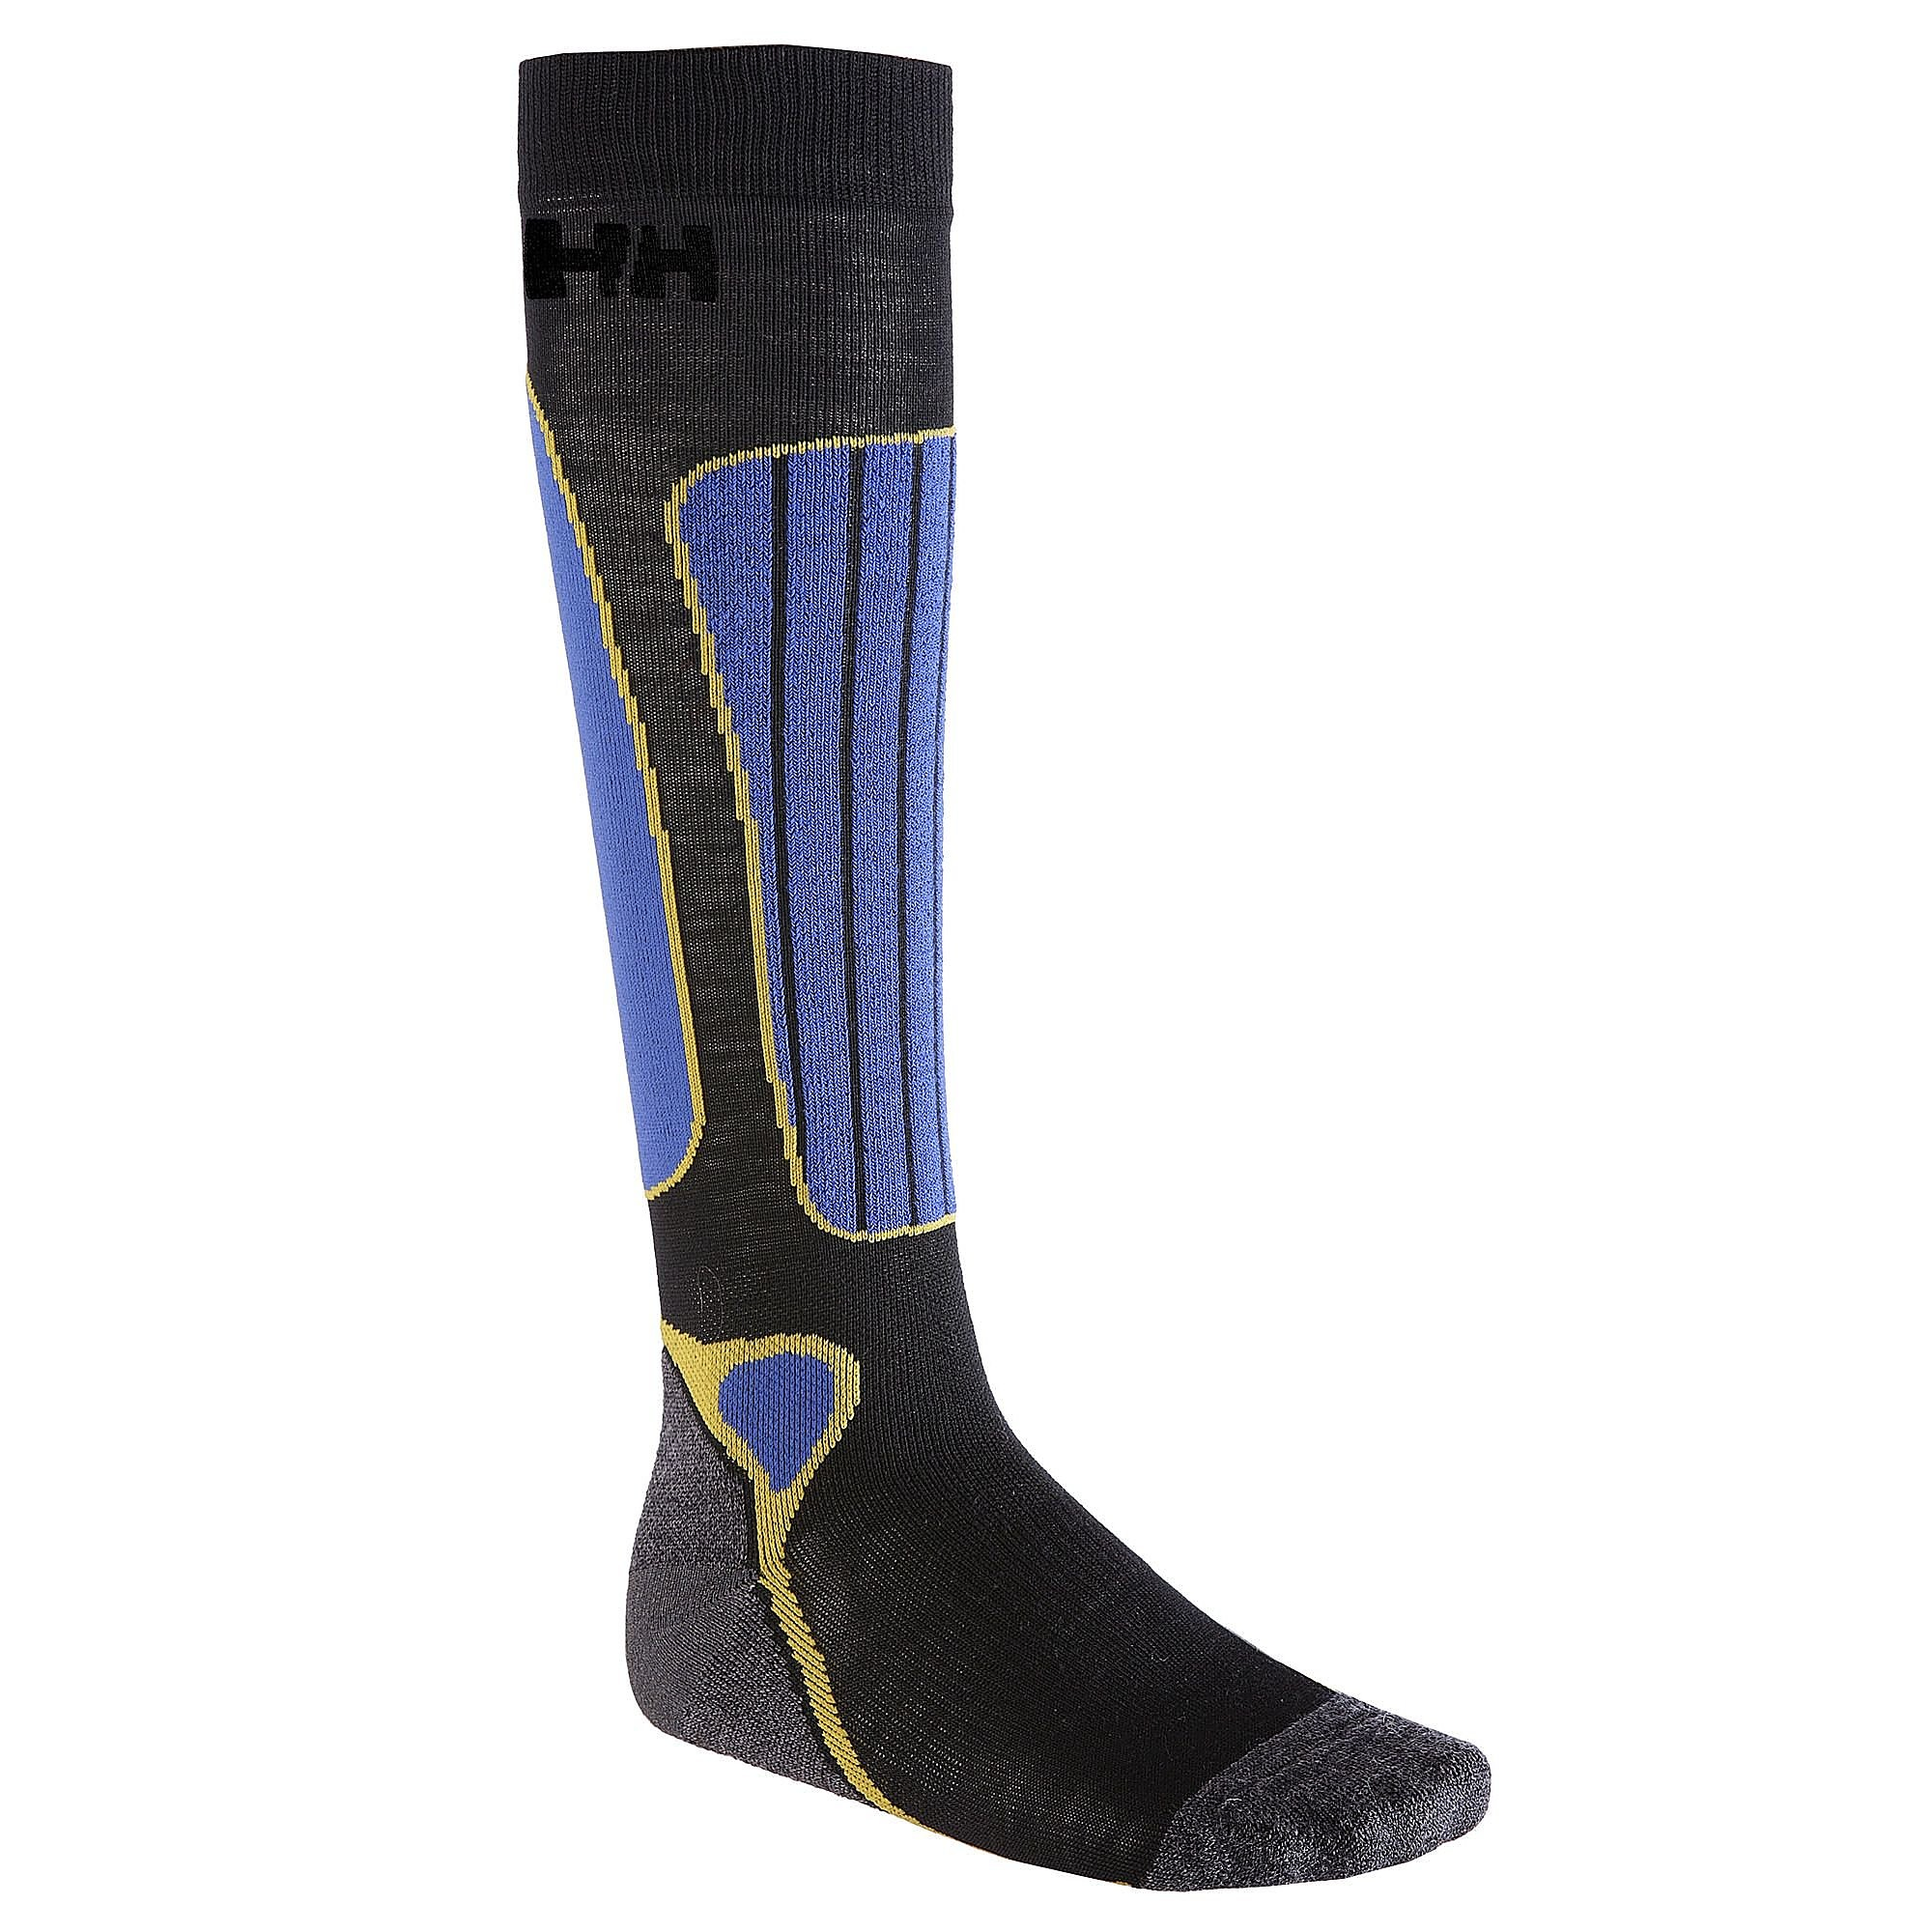 Helly Hansen EXTRA PERFORMANCE SKI SOCKS